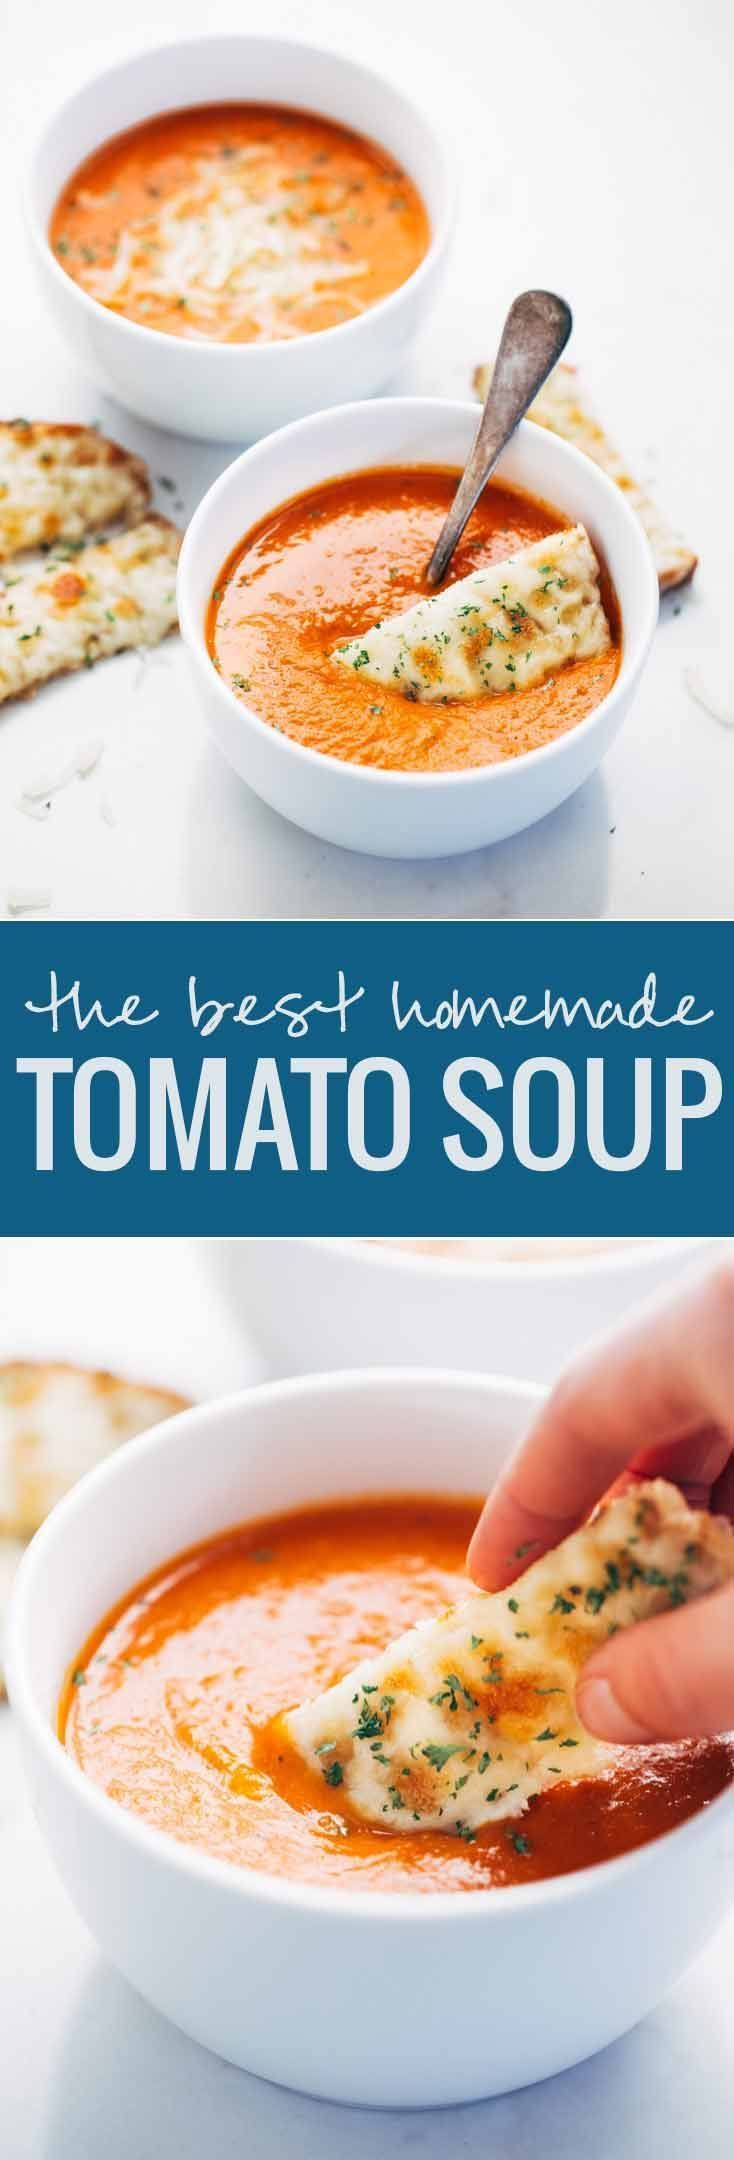 607 best Food: Soups & Salads Recipes images on Pinterest | Cooking ...